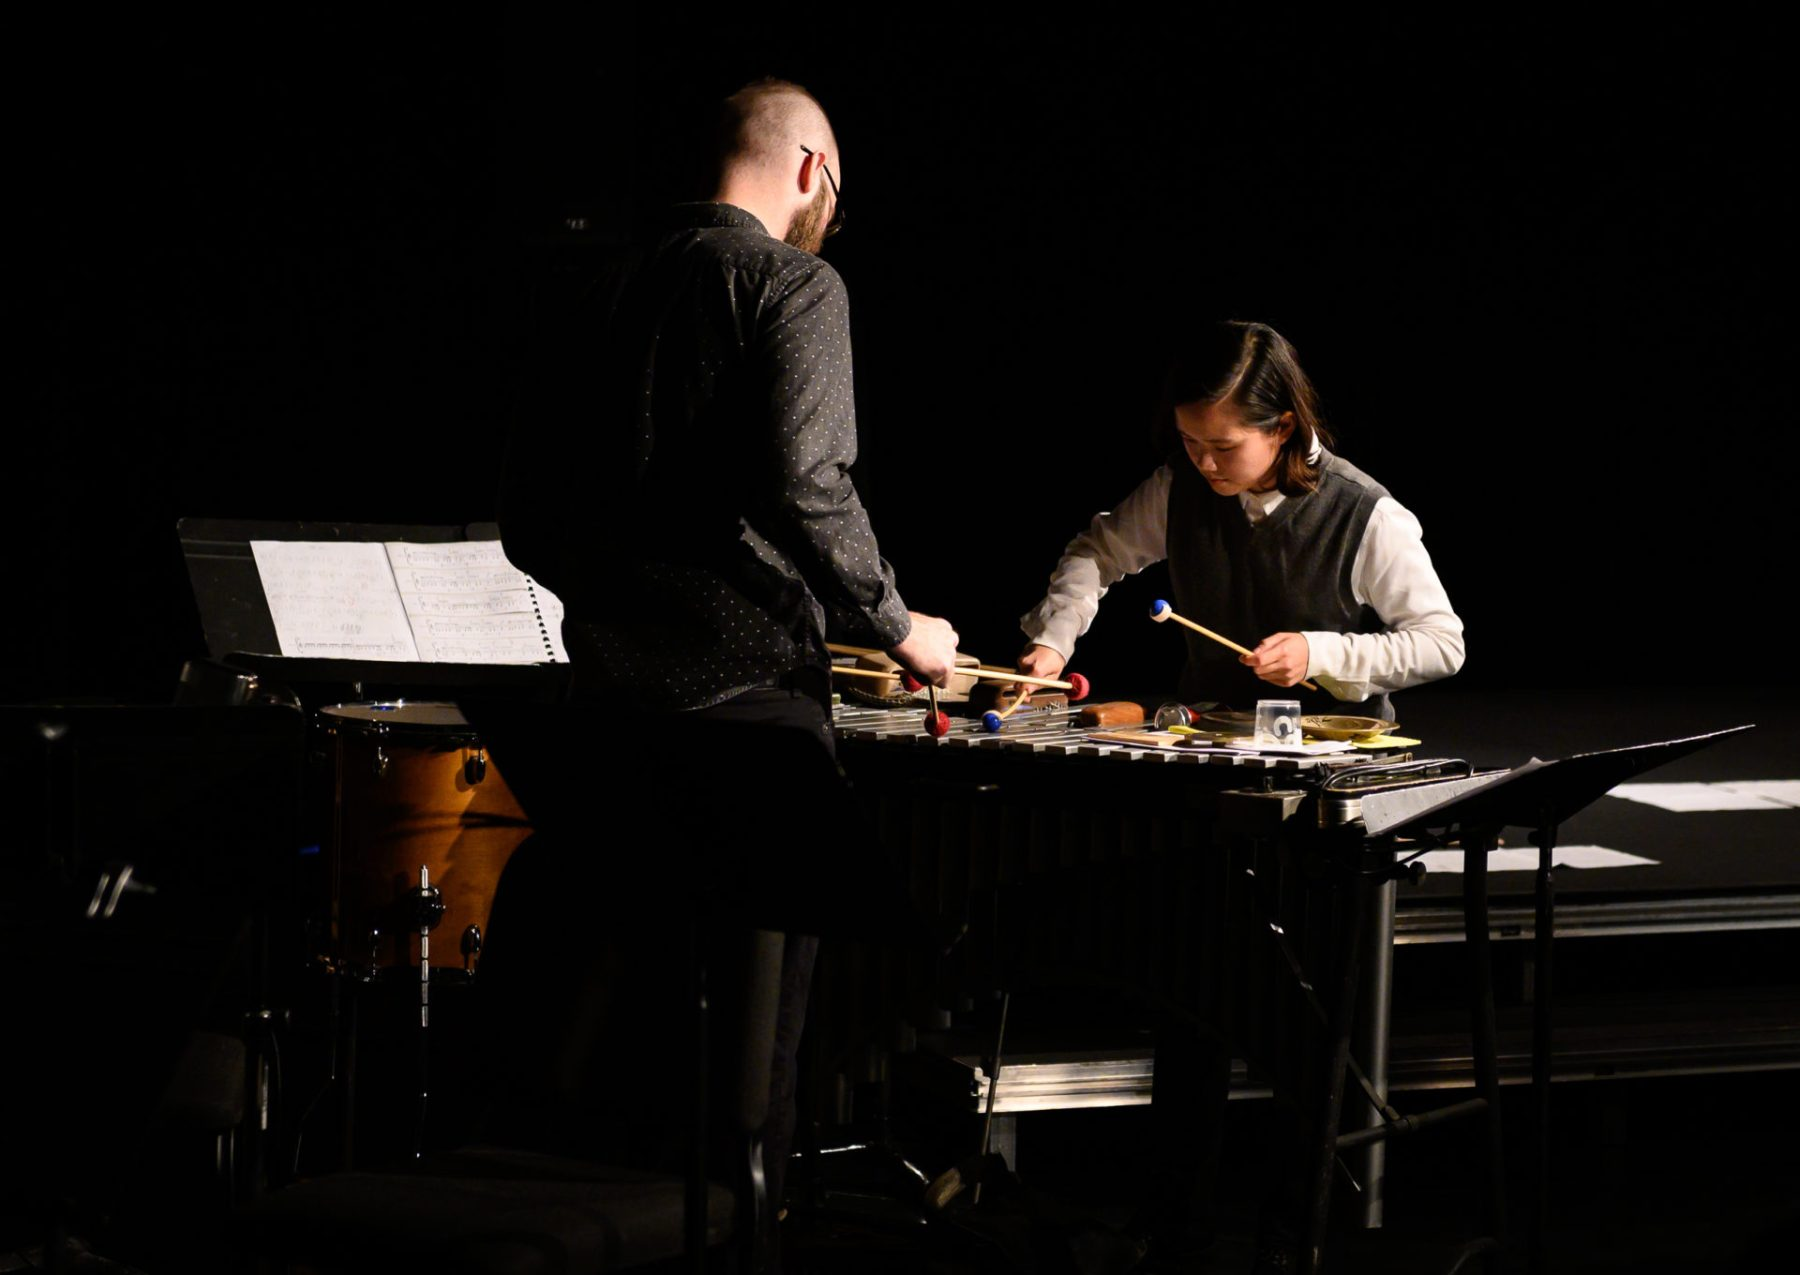 Aaron Graham & Julia Chien at Still Life with Avalanche, Modulus Festival 2019